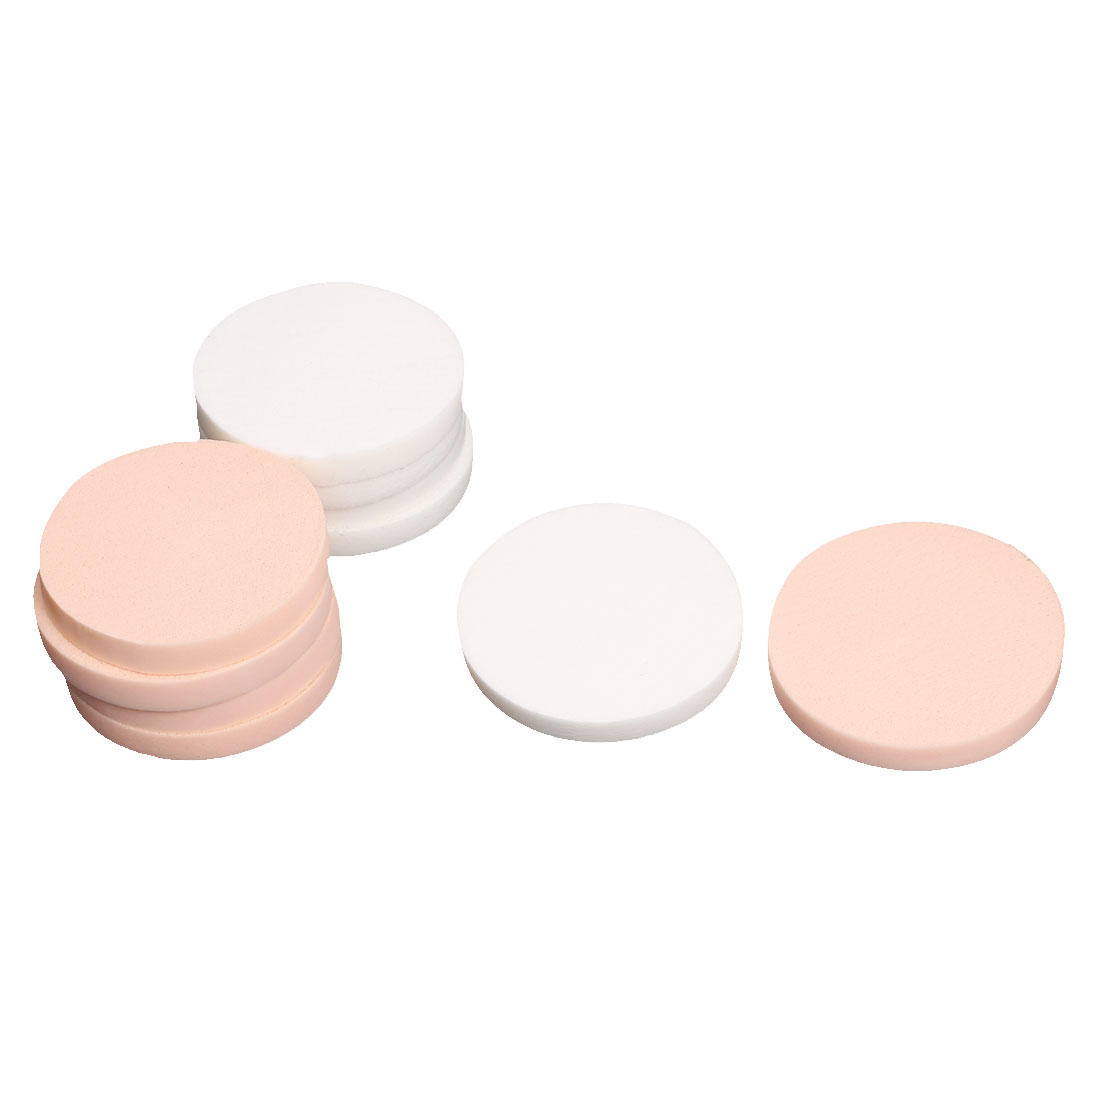 "Lady Women 2"" Dia Round Soft Makeup Cosmetic Facial Face Powder Puff 10Pcs"